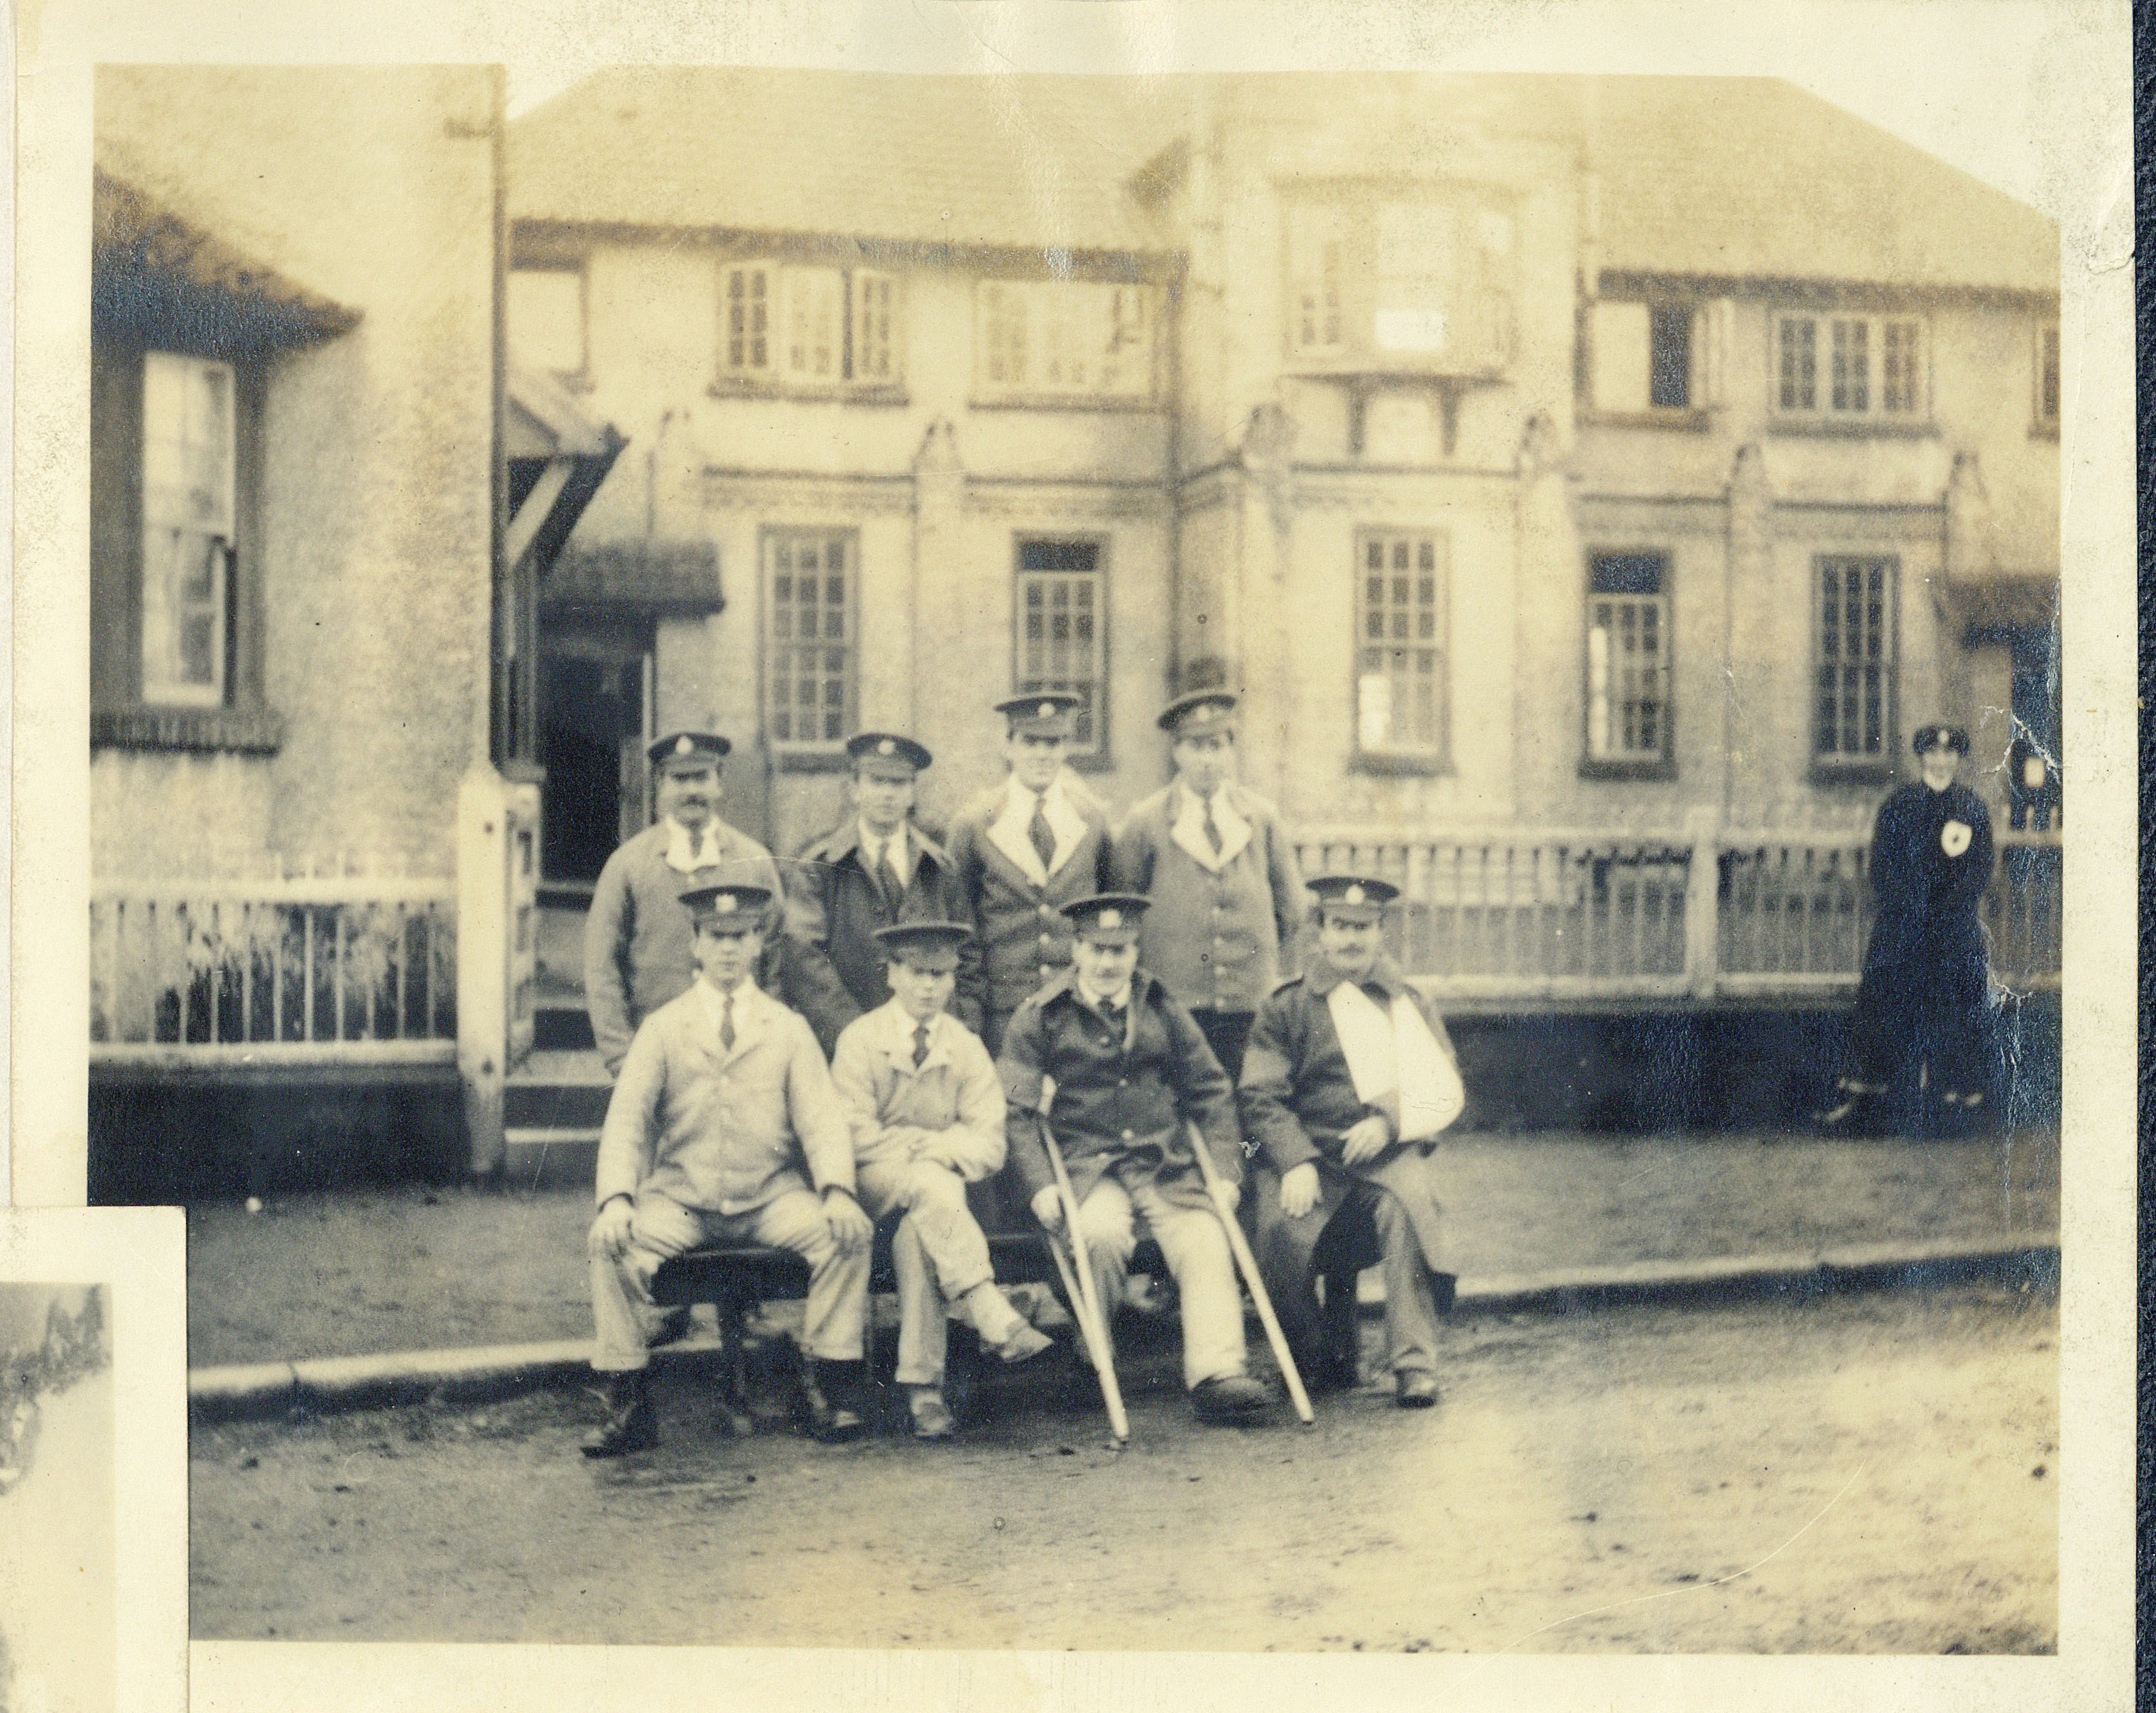 Photograph of wounded soldiers outside the auxiliary Hospital at Rounton Grange, New Years Eve, 1916 (Charles Philips Trevelyan Archive, CPT/PA/6)